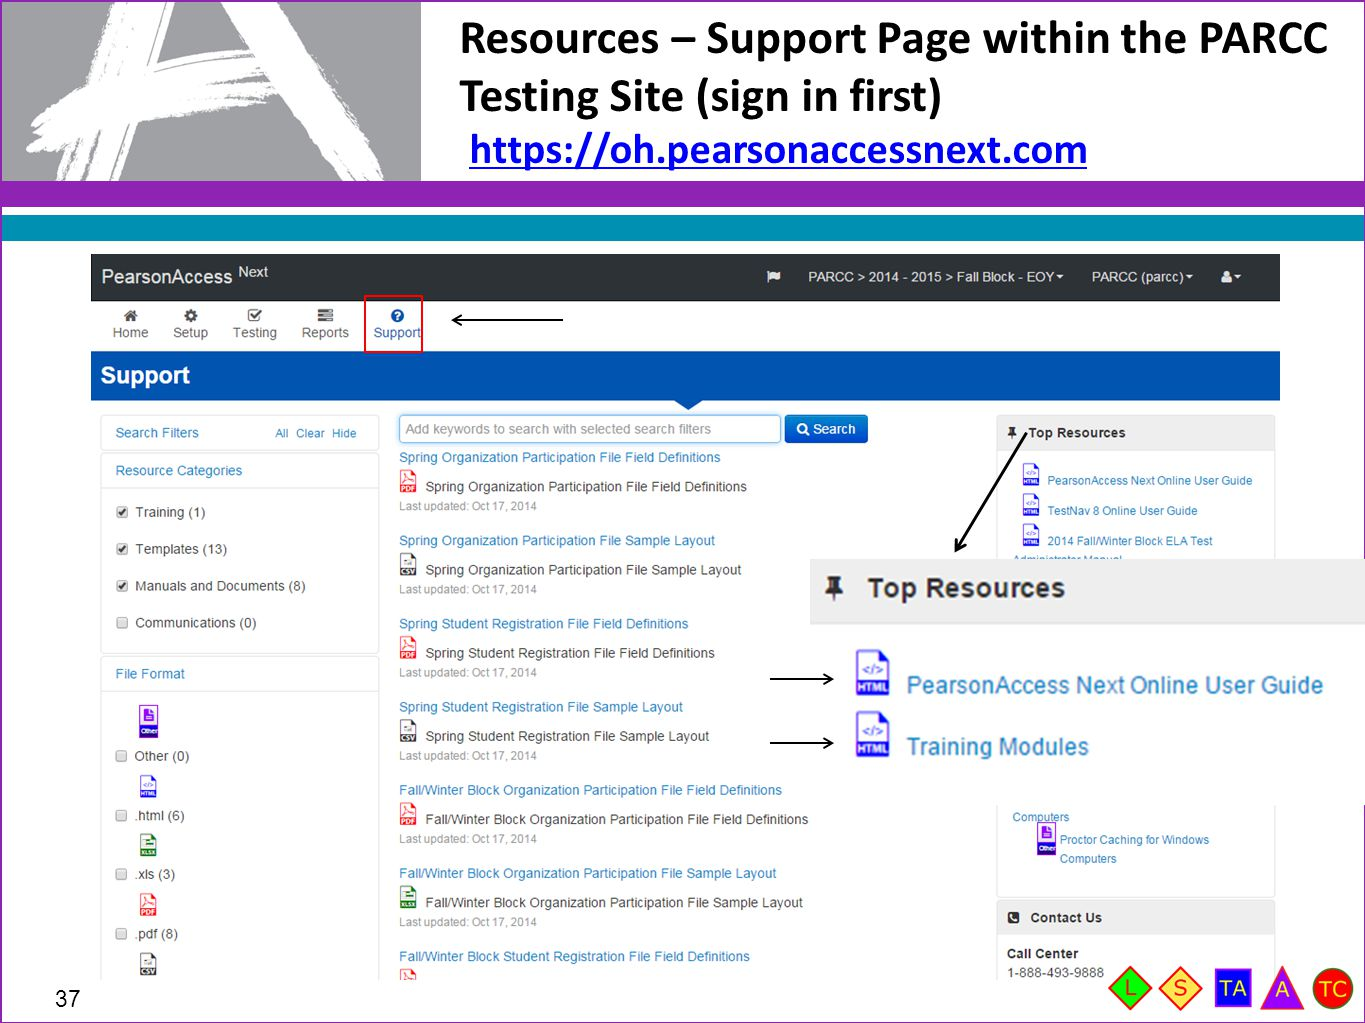 Resources – Support Page within the PARCC Testing Site (sign in first) https://oh.pearsonaccessnext.com